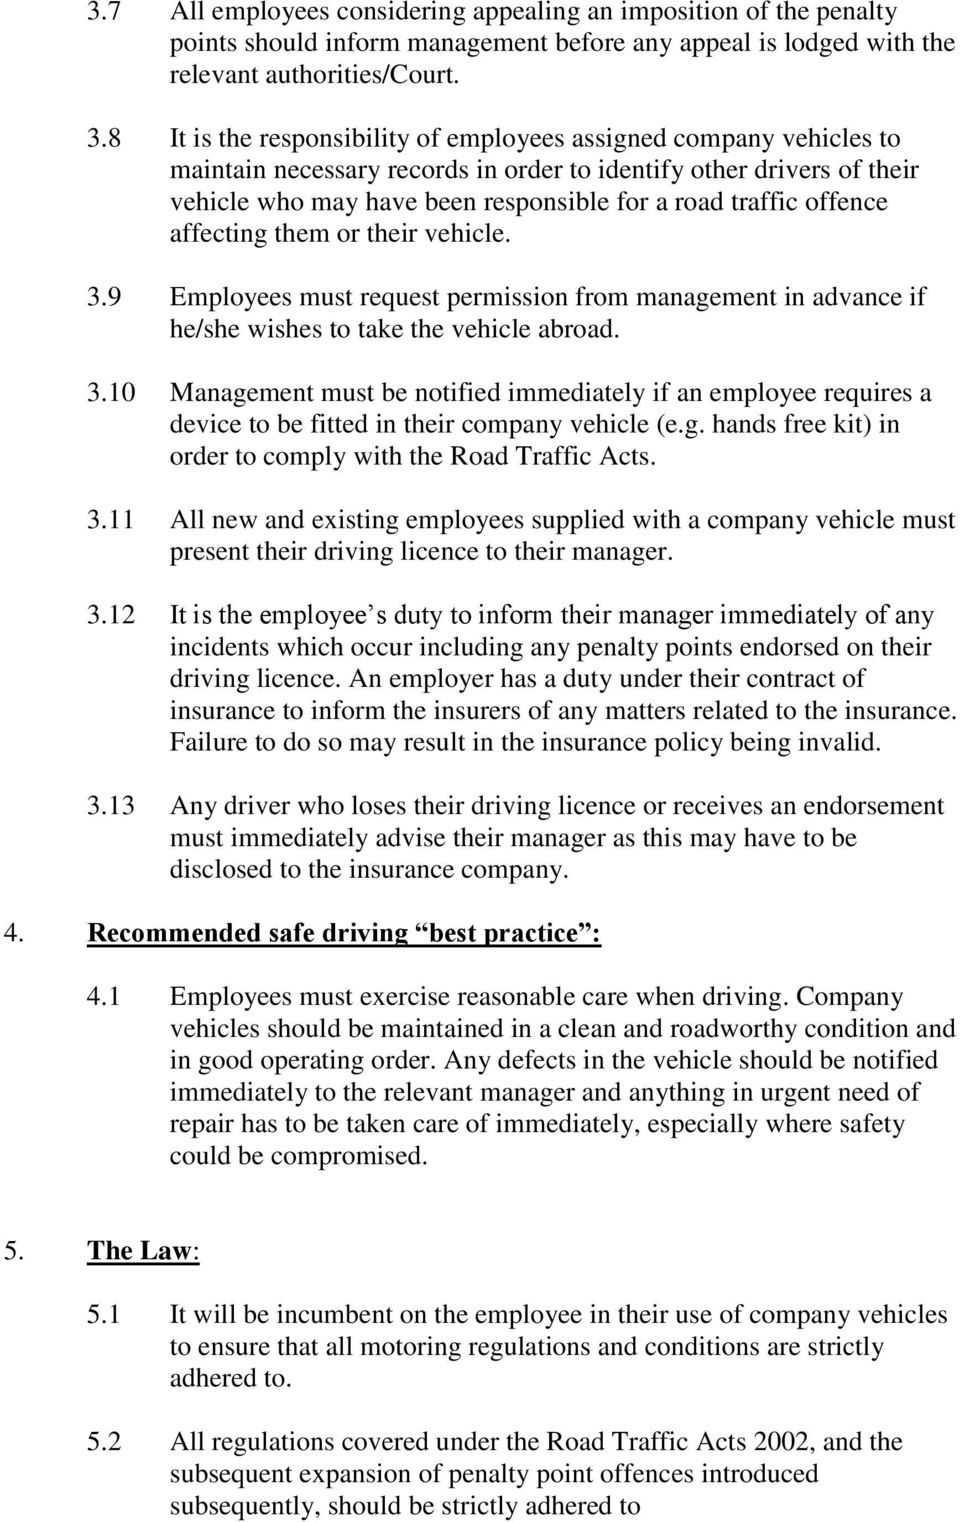 offence affecting them or their vehicle. 3.9 Employees must request permission from management in advance if he/she wishes to take the vehicle abroad. 3.10 Management must be notified immediately if an employee requires a device to be fitted in their company vehicle (e.